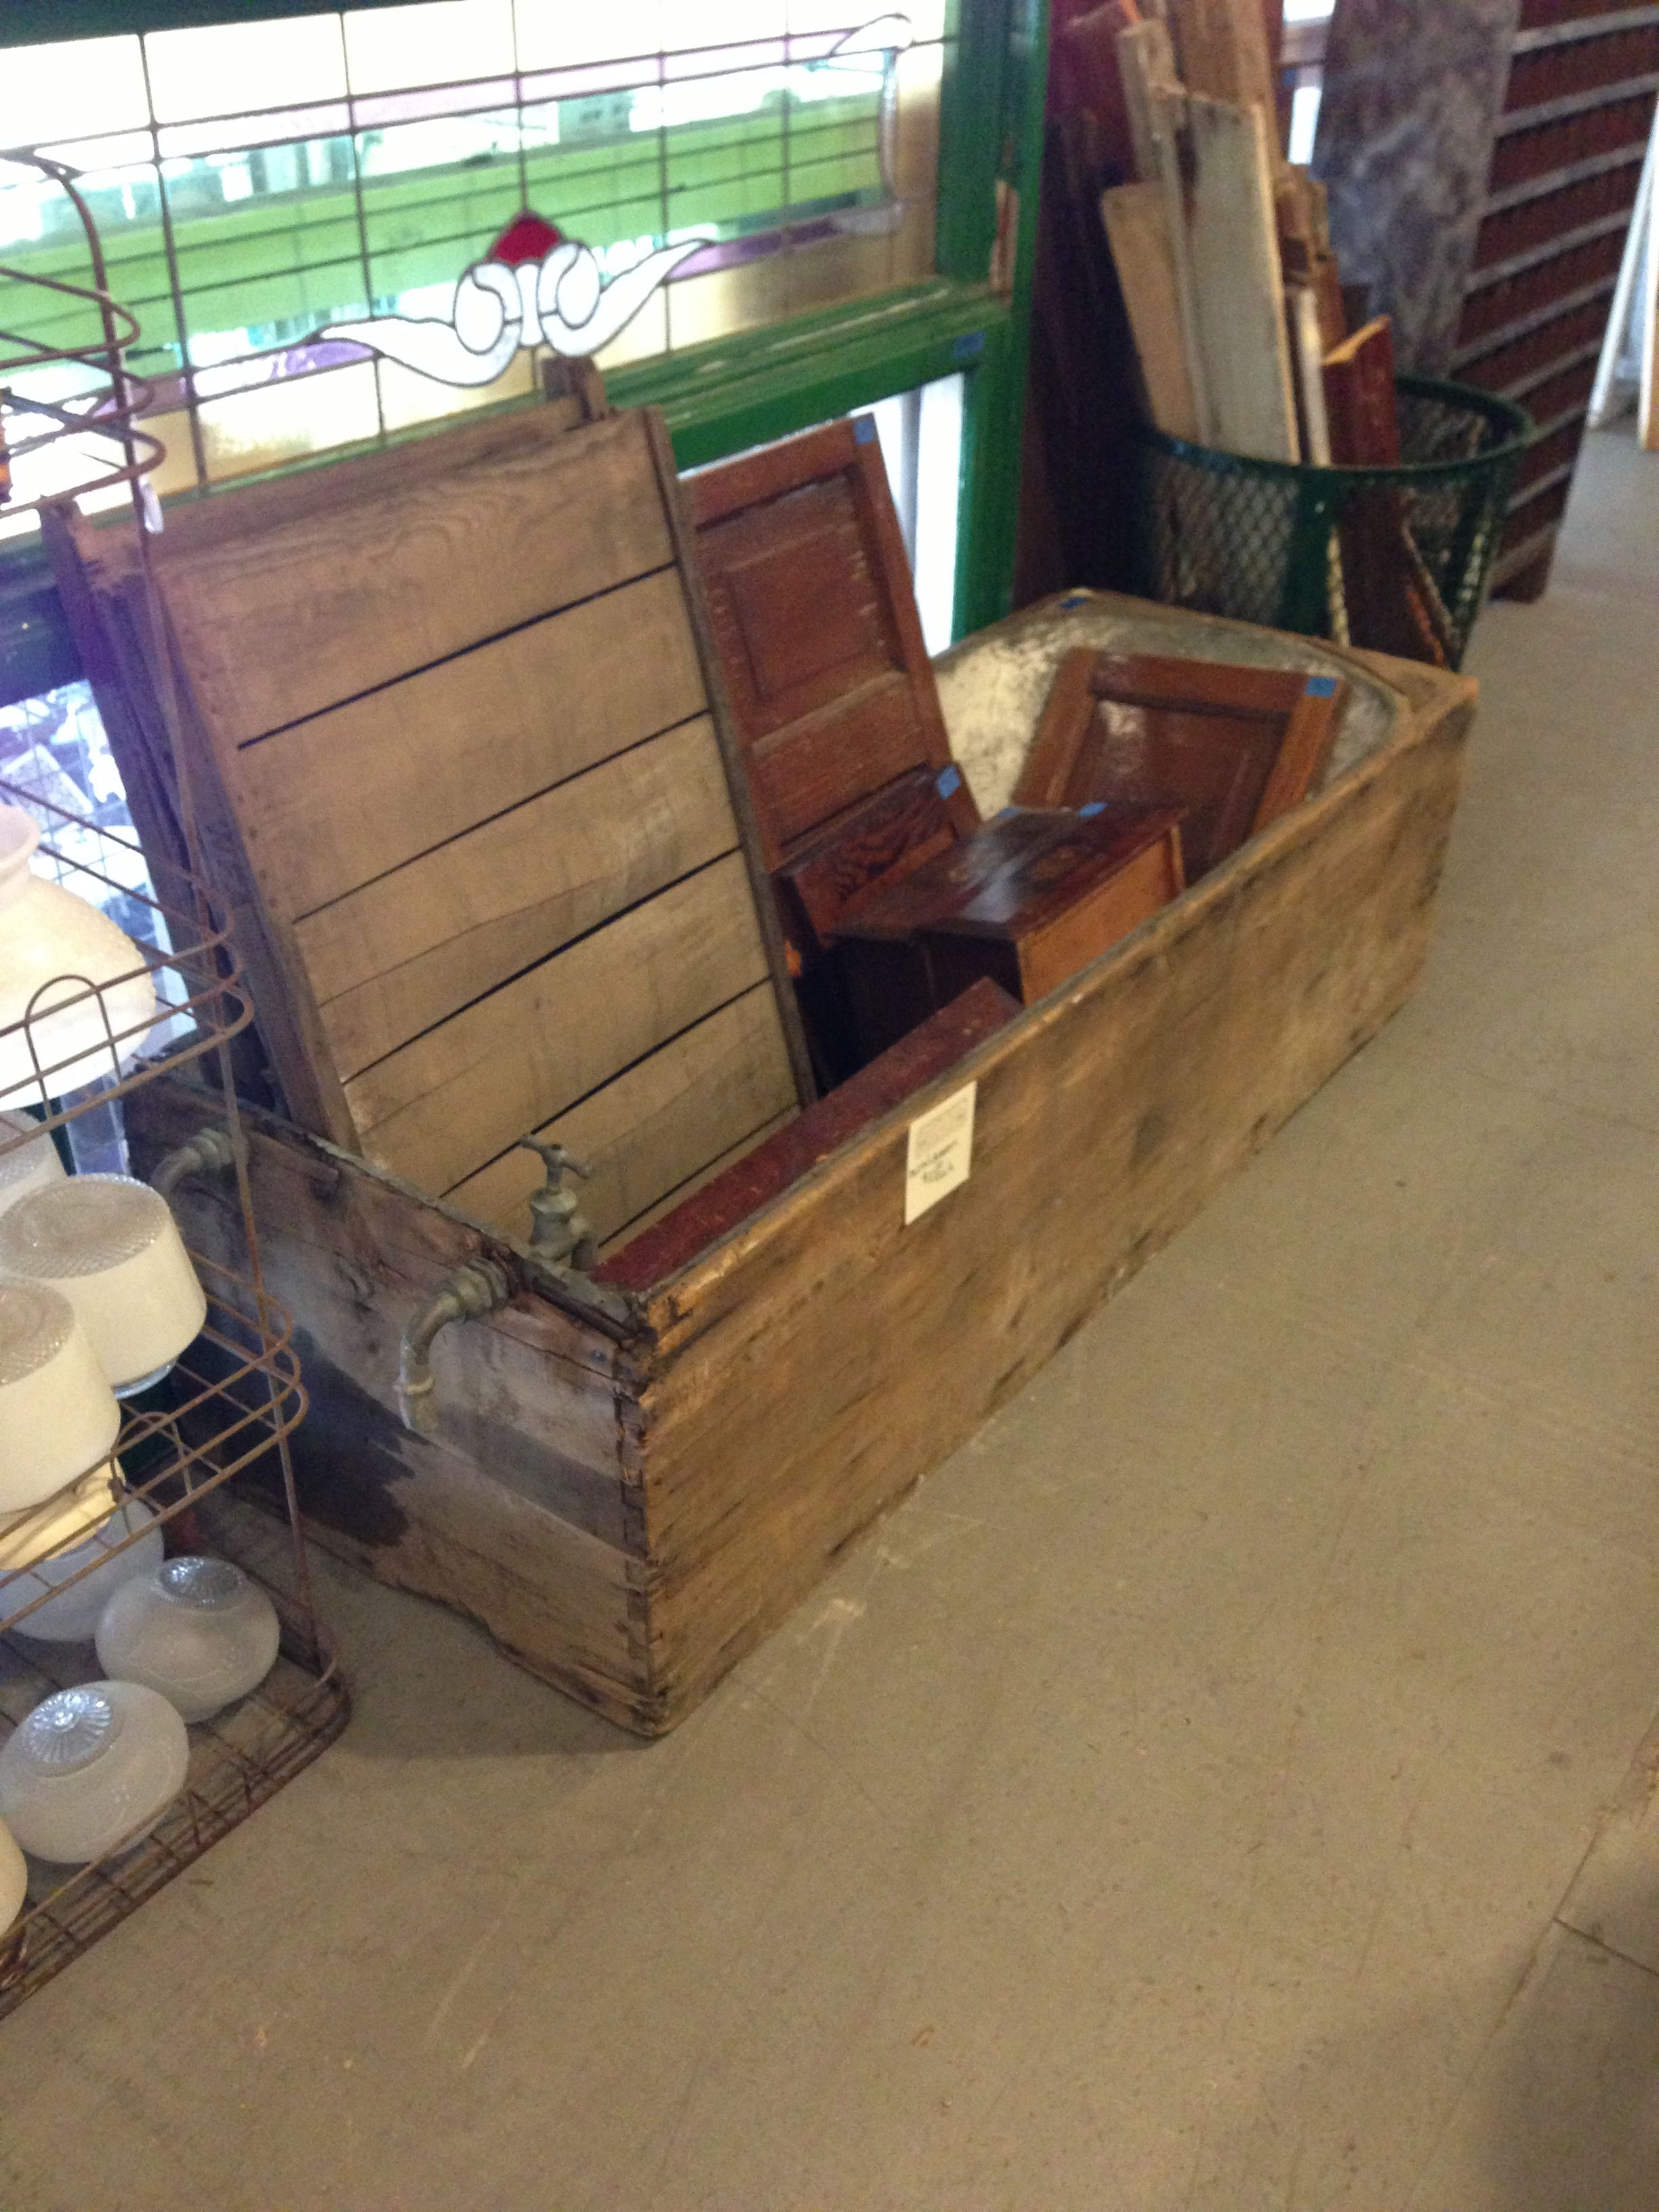 Antique bathtub for coffee table with interior lighting and